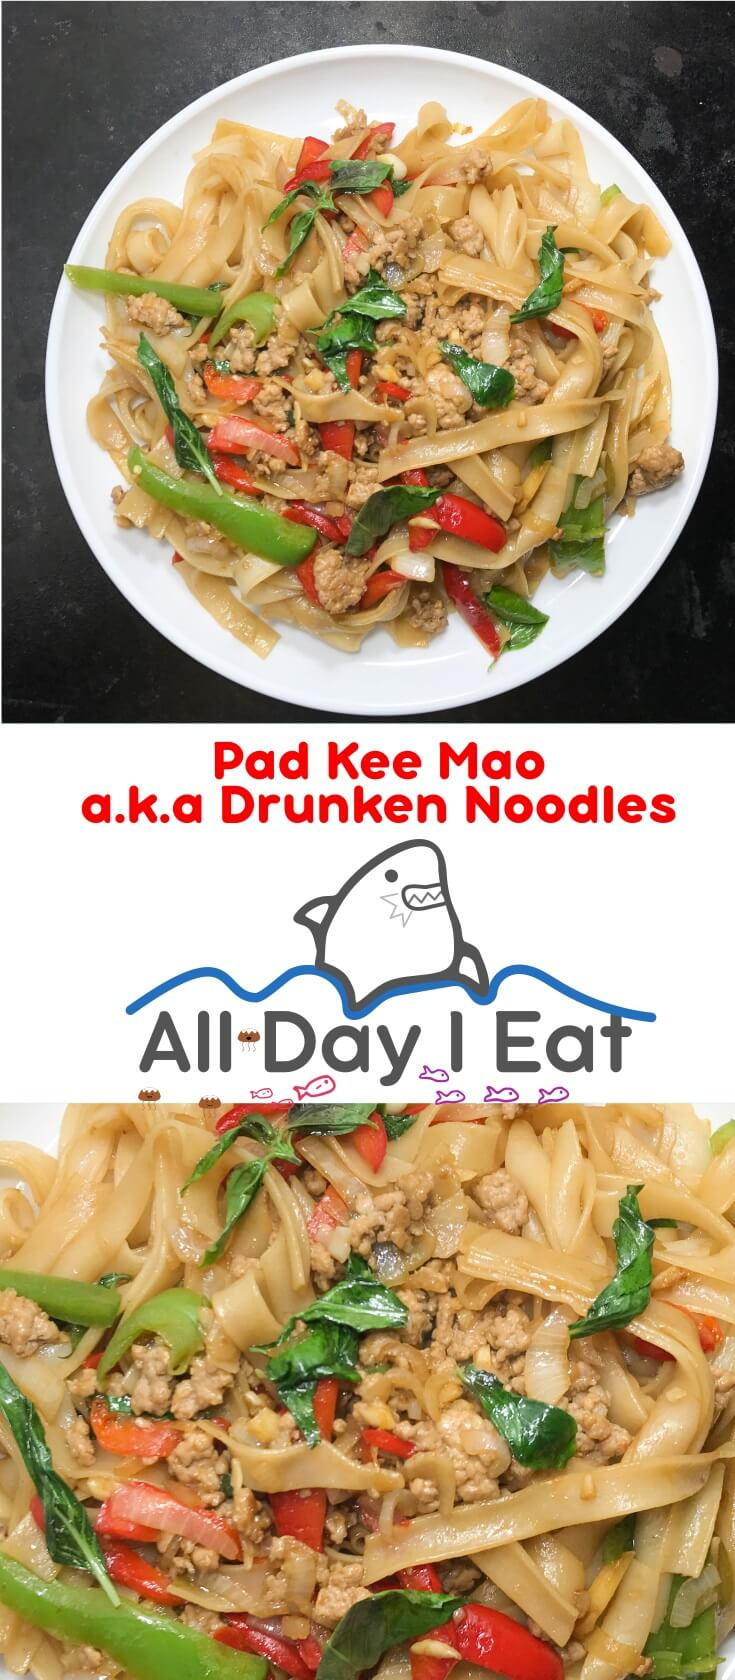 Pad Kee Mao a.k.a drunken noodles! One of the tastiest and most comforting Thai Stir Frys you can make, and it's super easy!! | www.alldayieat.com